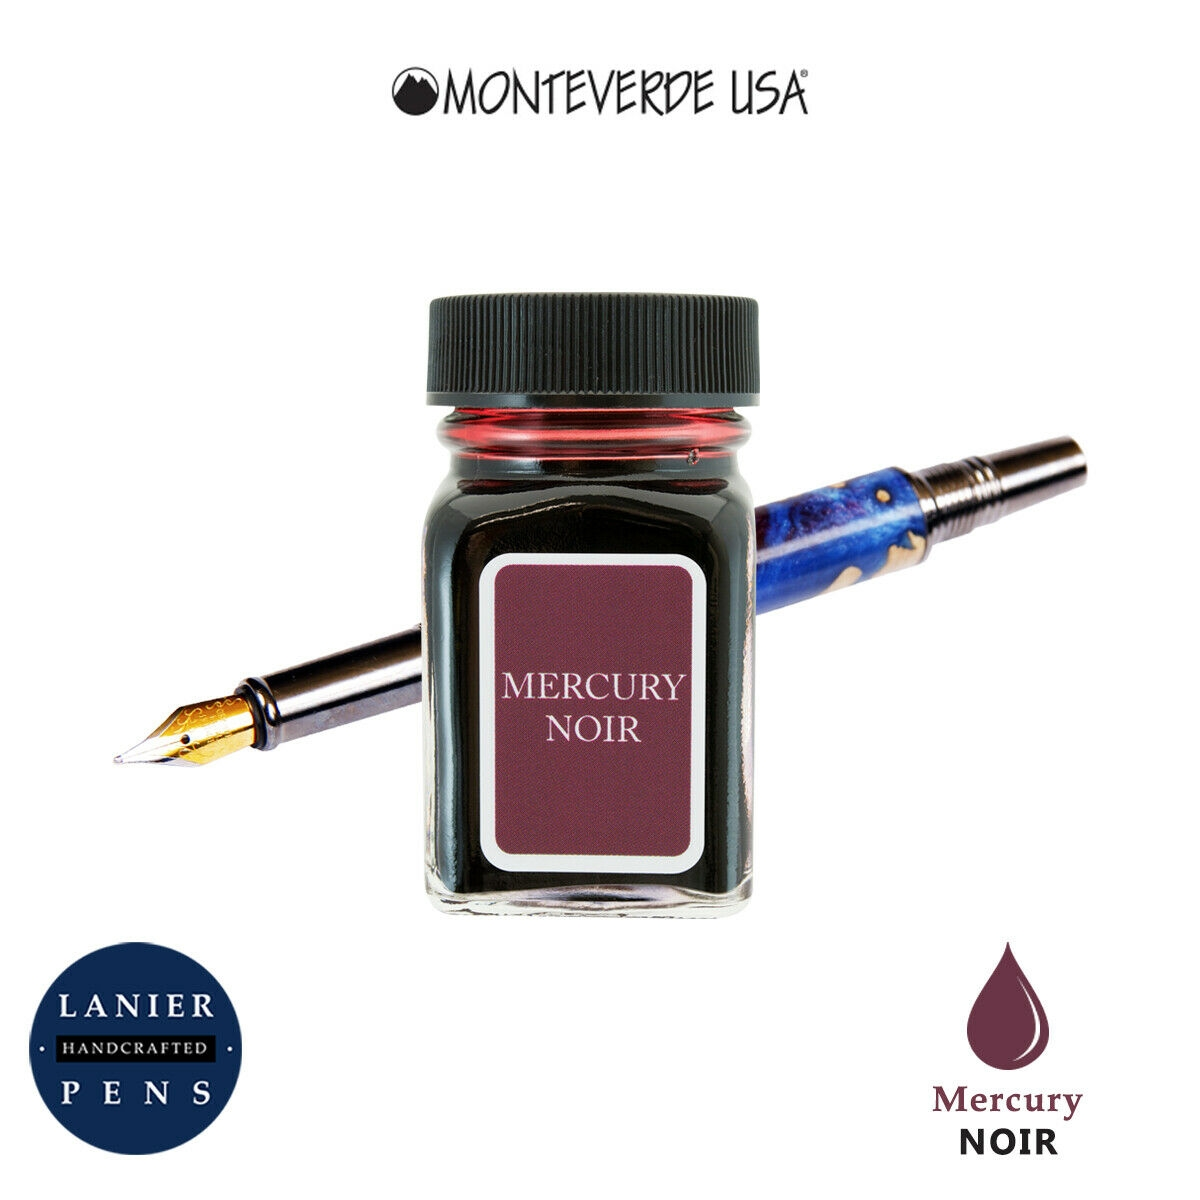 Monteverde G309MN 30 ml Noir Fountain Pen Ink Bottle- Mercury Noir